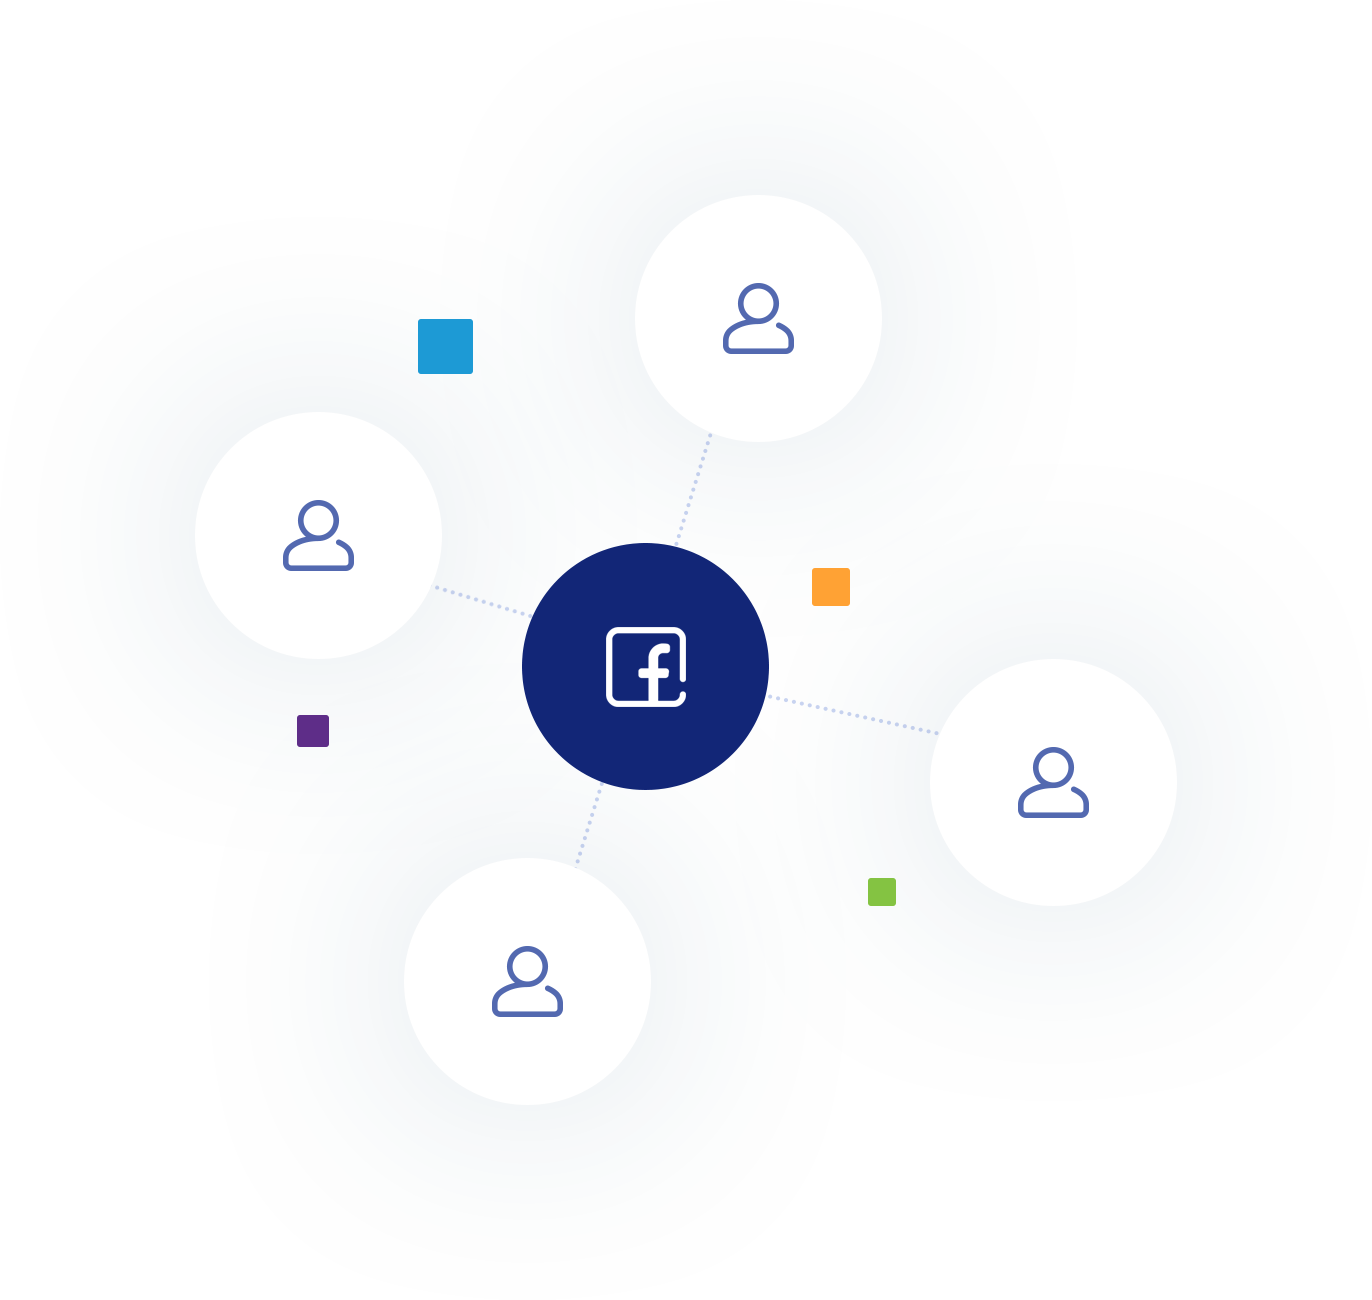 A graphic illustration of using social media for email marketing purposes from MarketingPlatform.